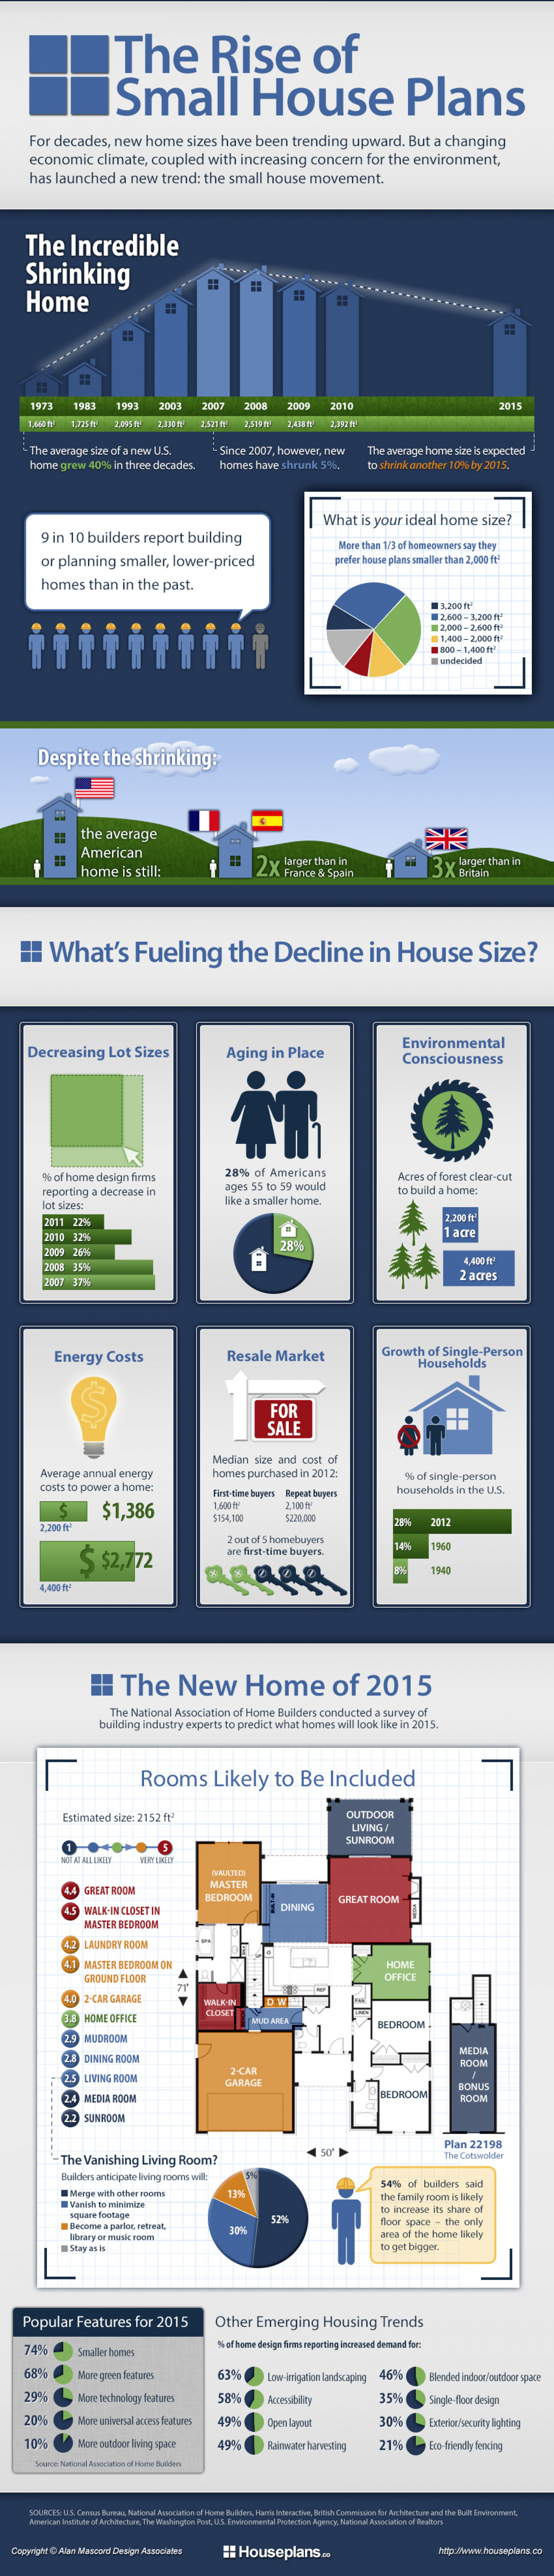 The Rise of Small House Plans Infographic